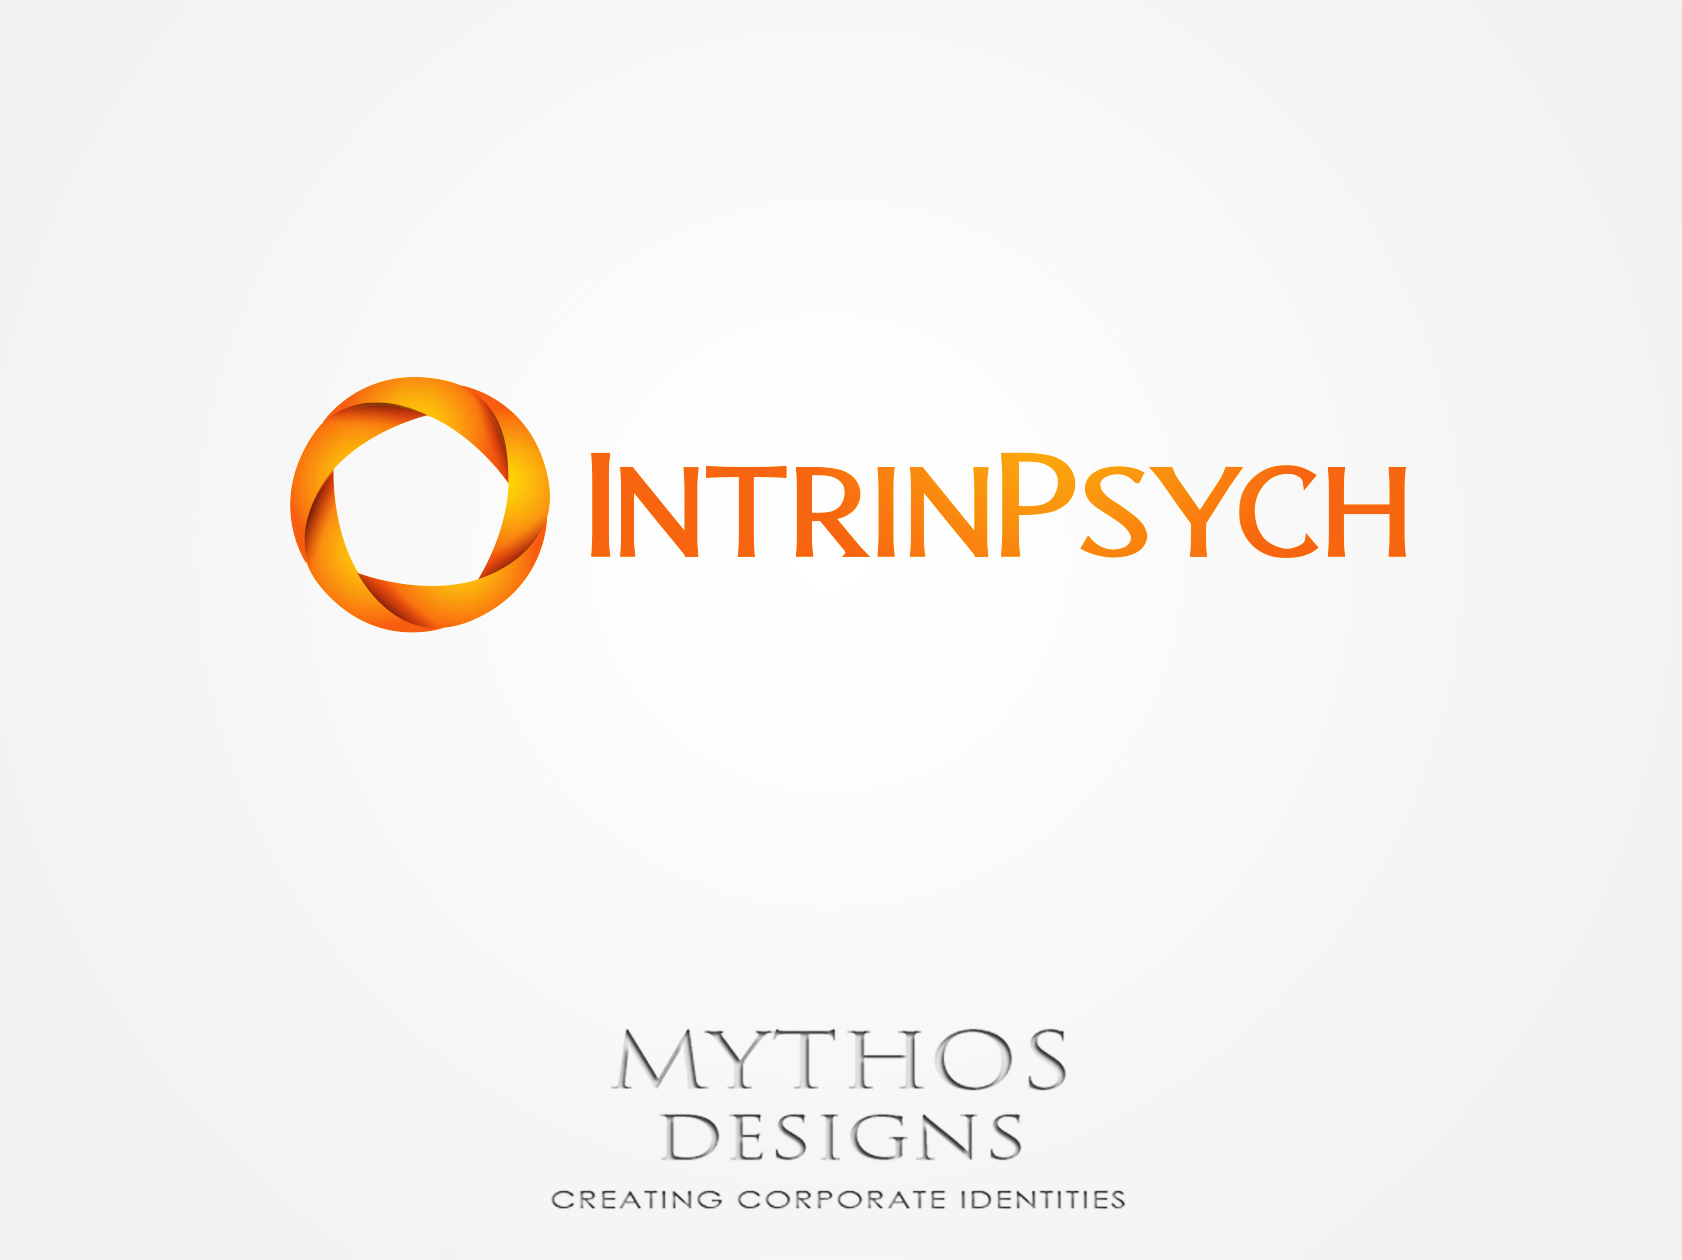 Logo Design by Mythos Designs - Entry No. 122 in the Logo Design Contest New Logo Design for IntrinPsych.